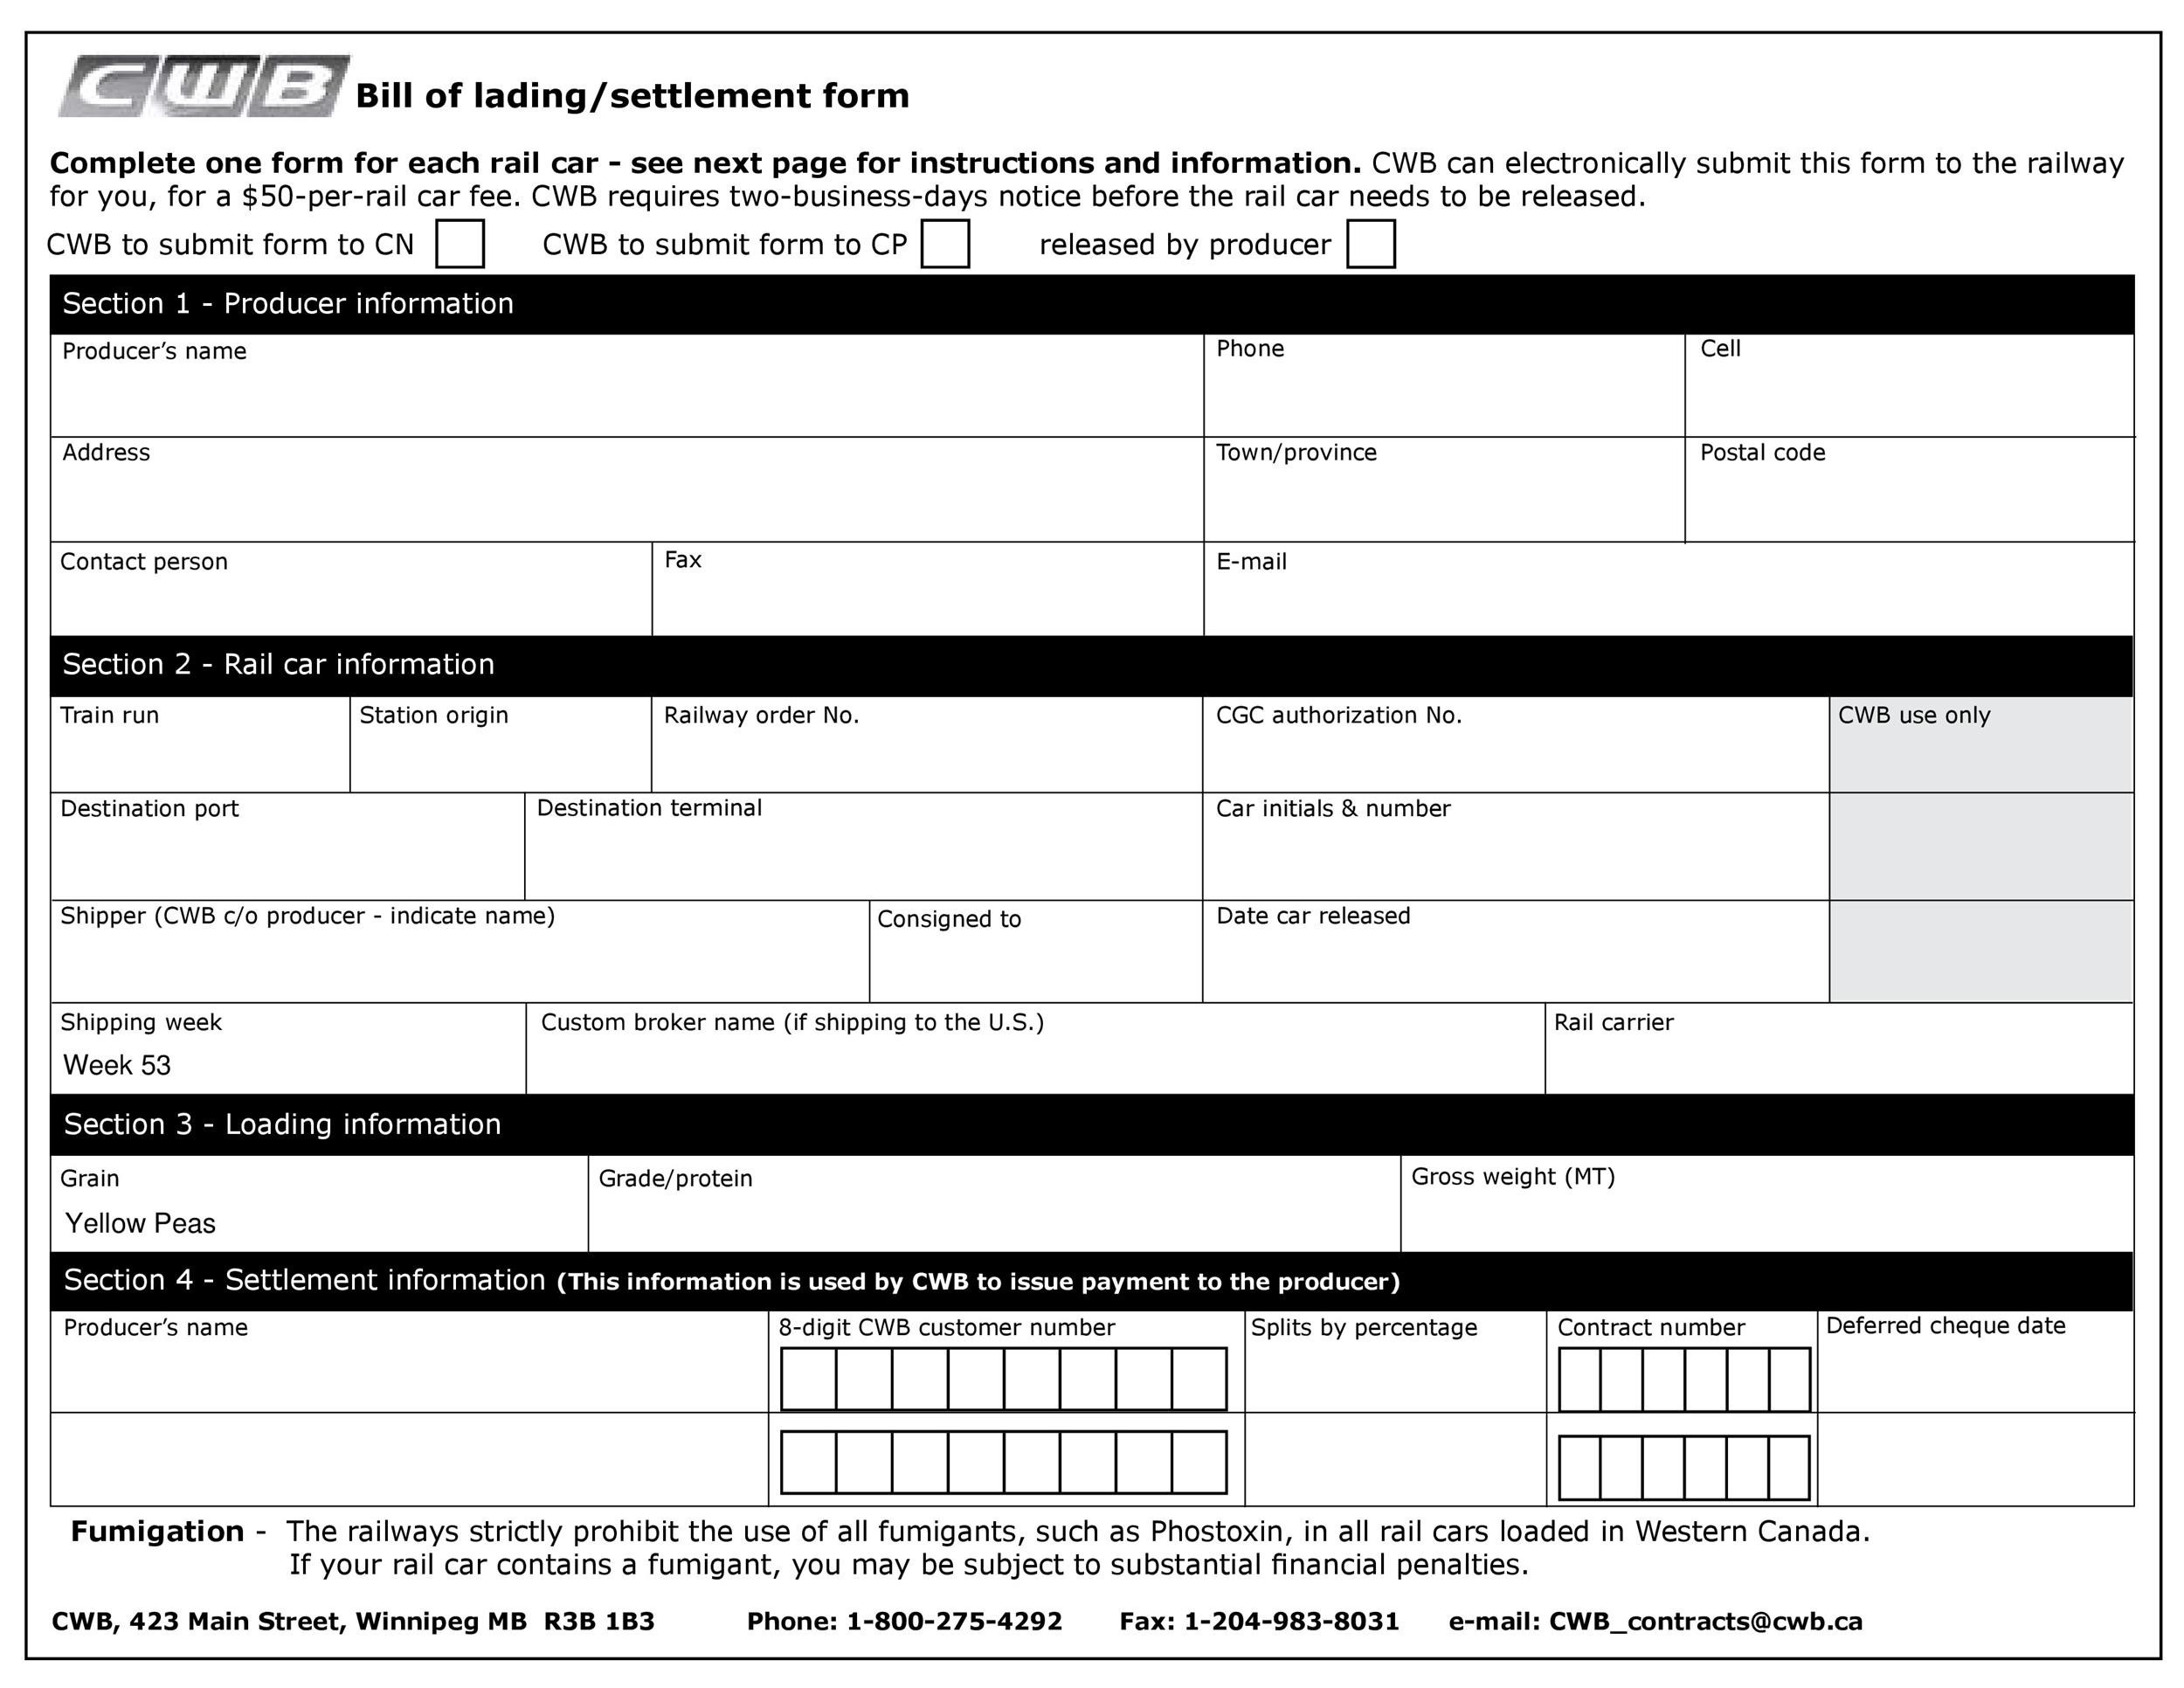 40 Free Bill of Lading Forms  Templates - Template Lab - Bill Of Lading Form